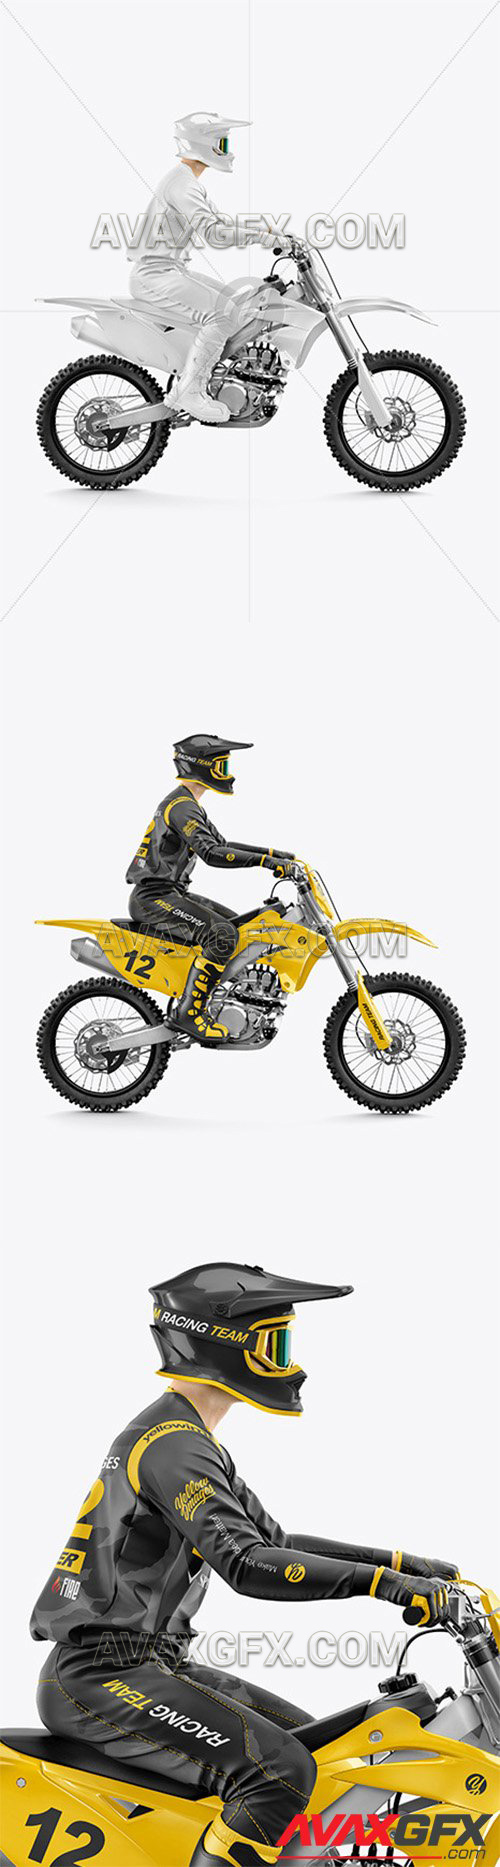 Download 35+ Motocross Racing Kit Mockup Images Yellowimages - Free ...